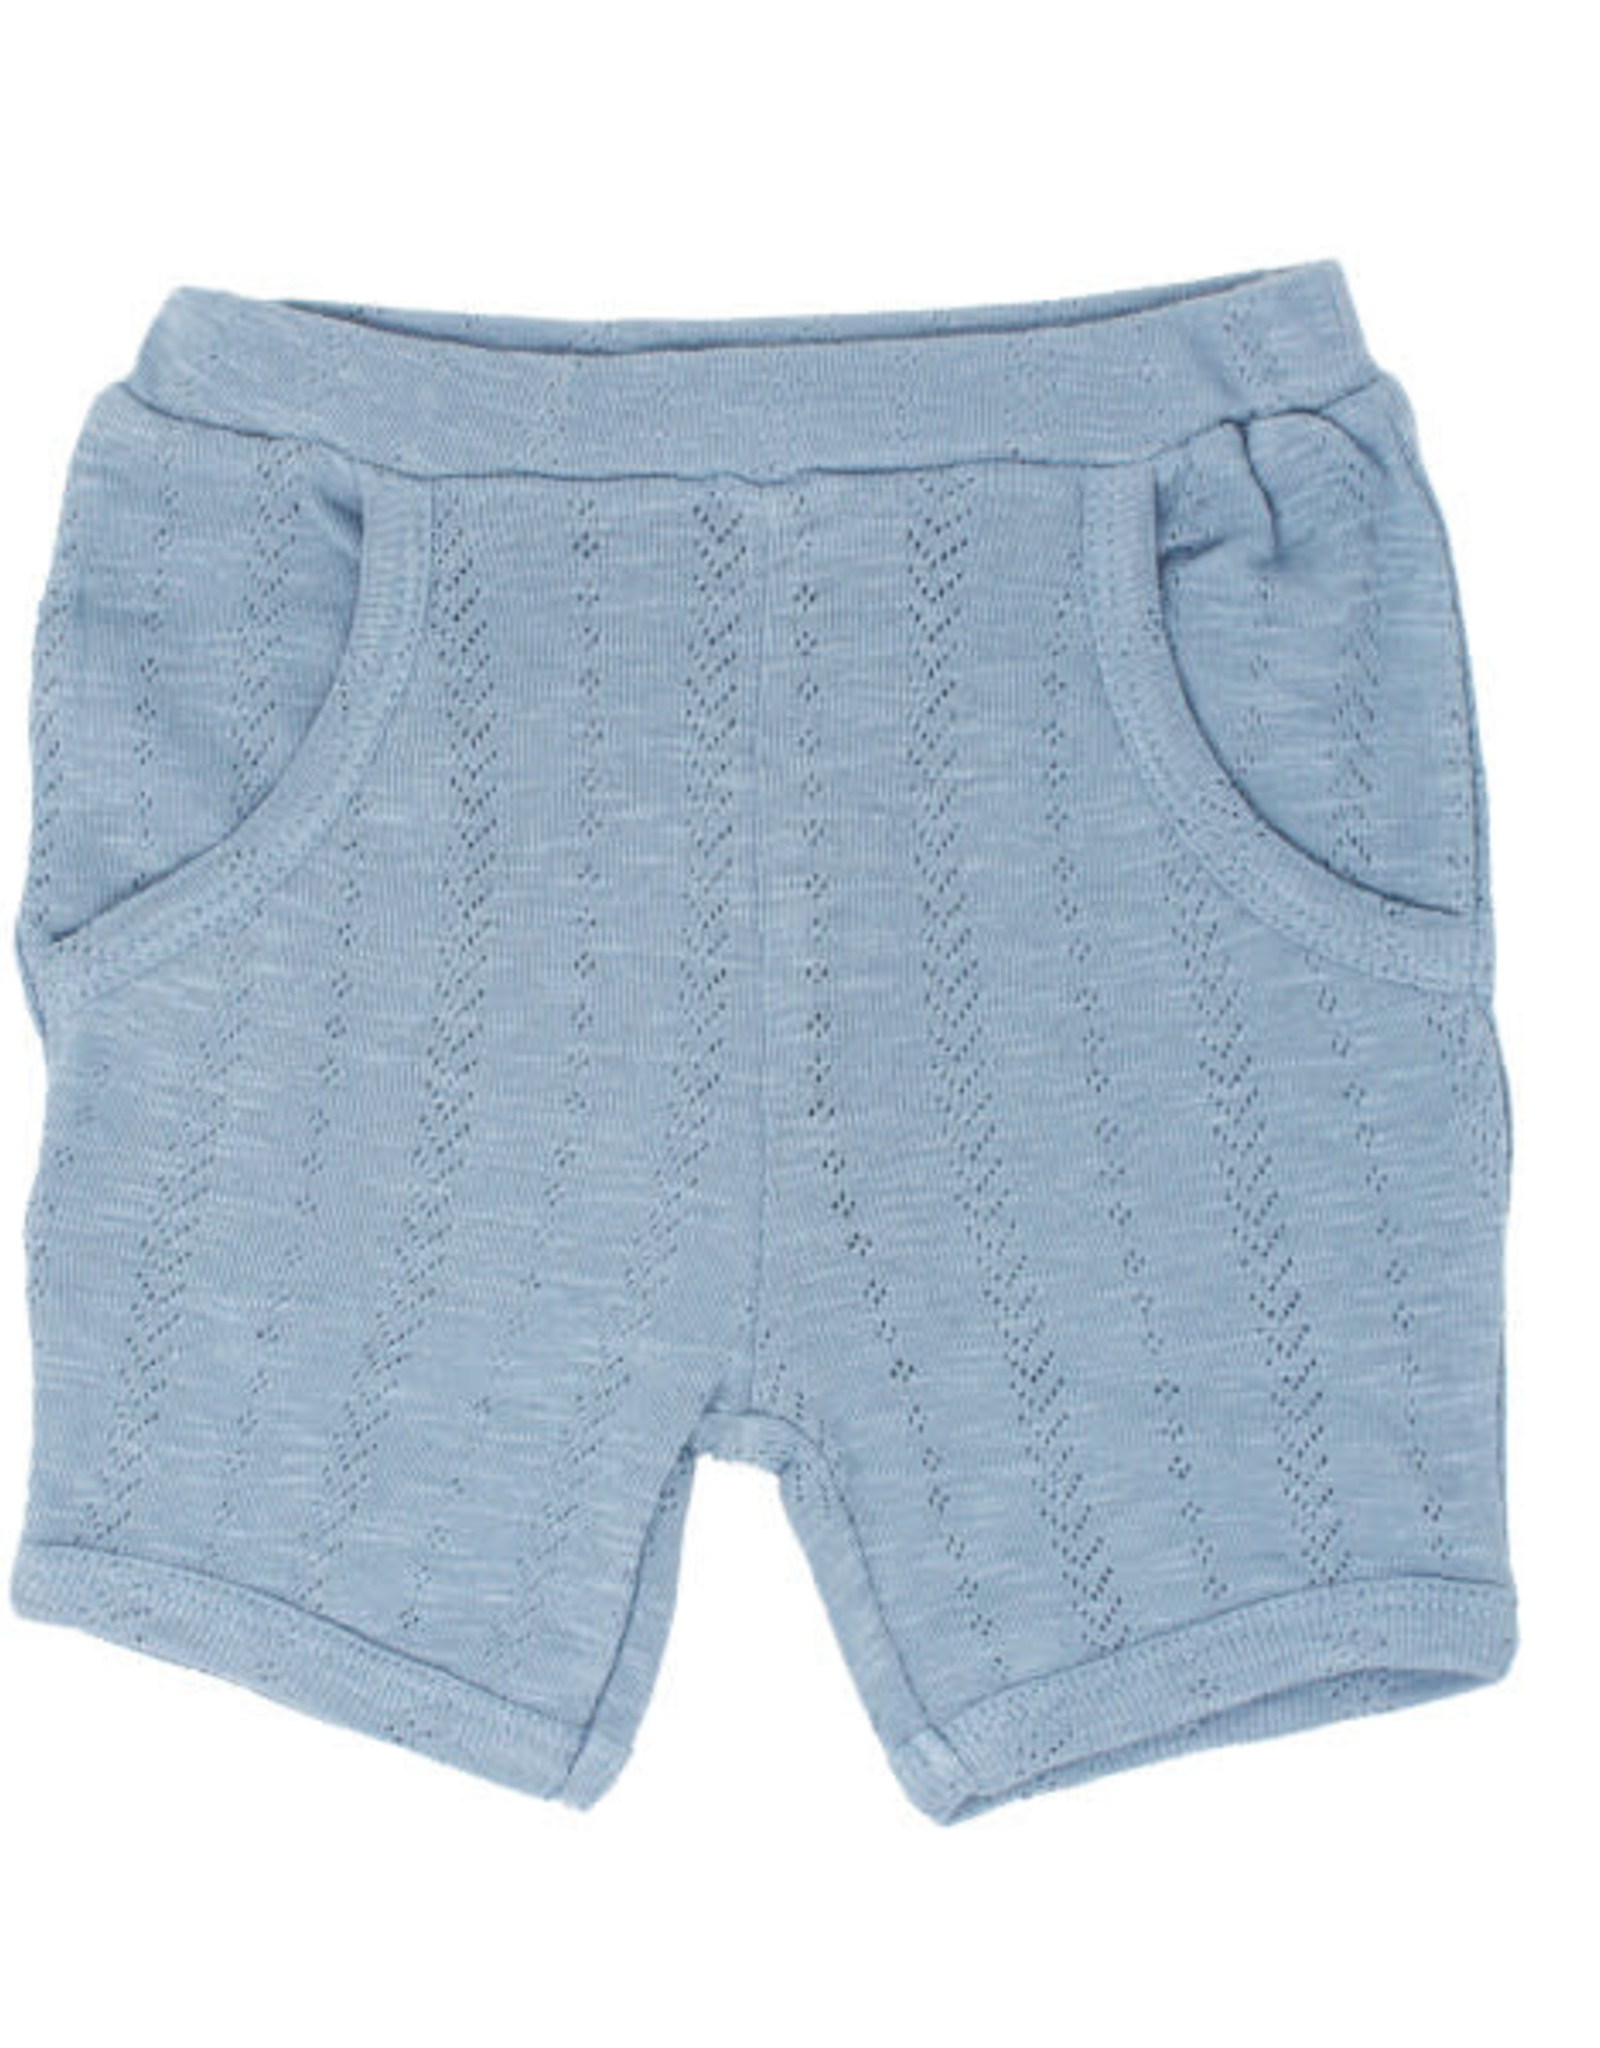 L'oved Baby Pointelle Shorts Pool